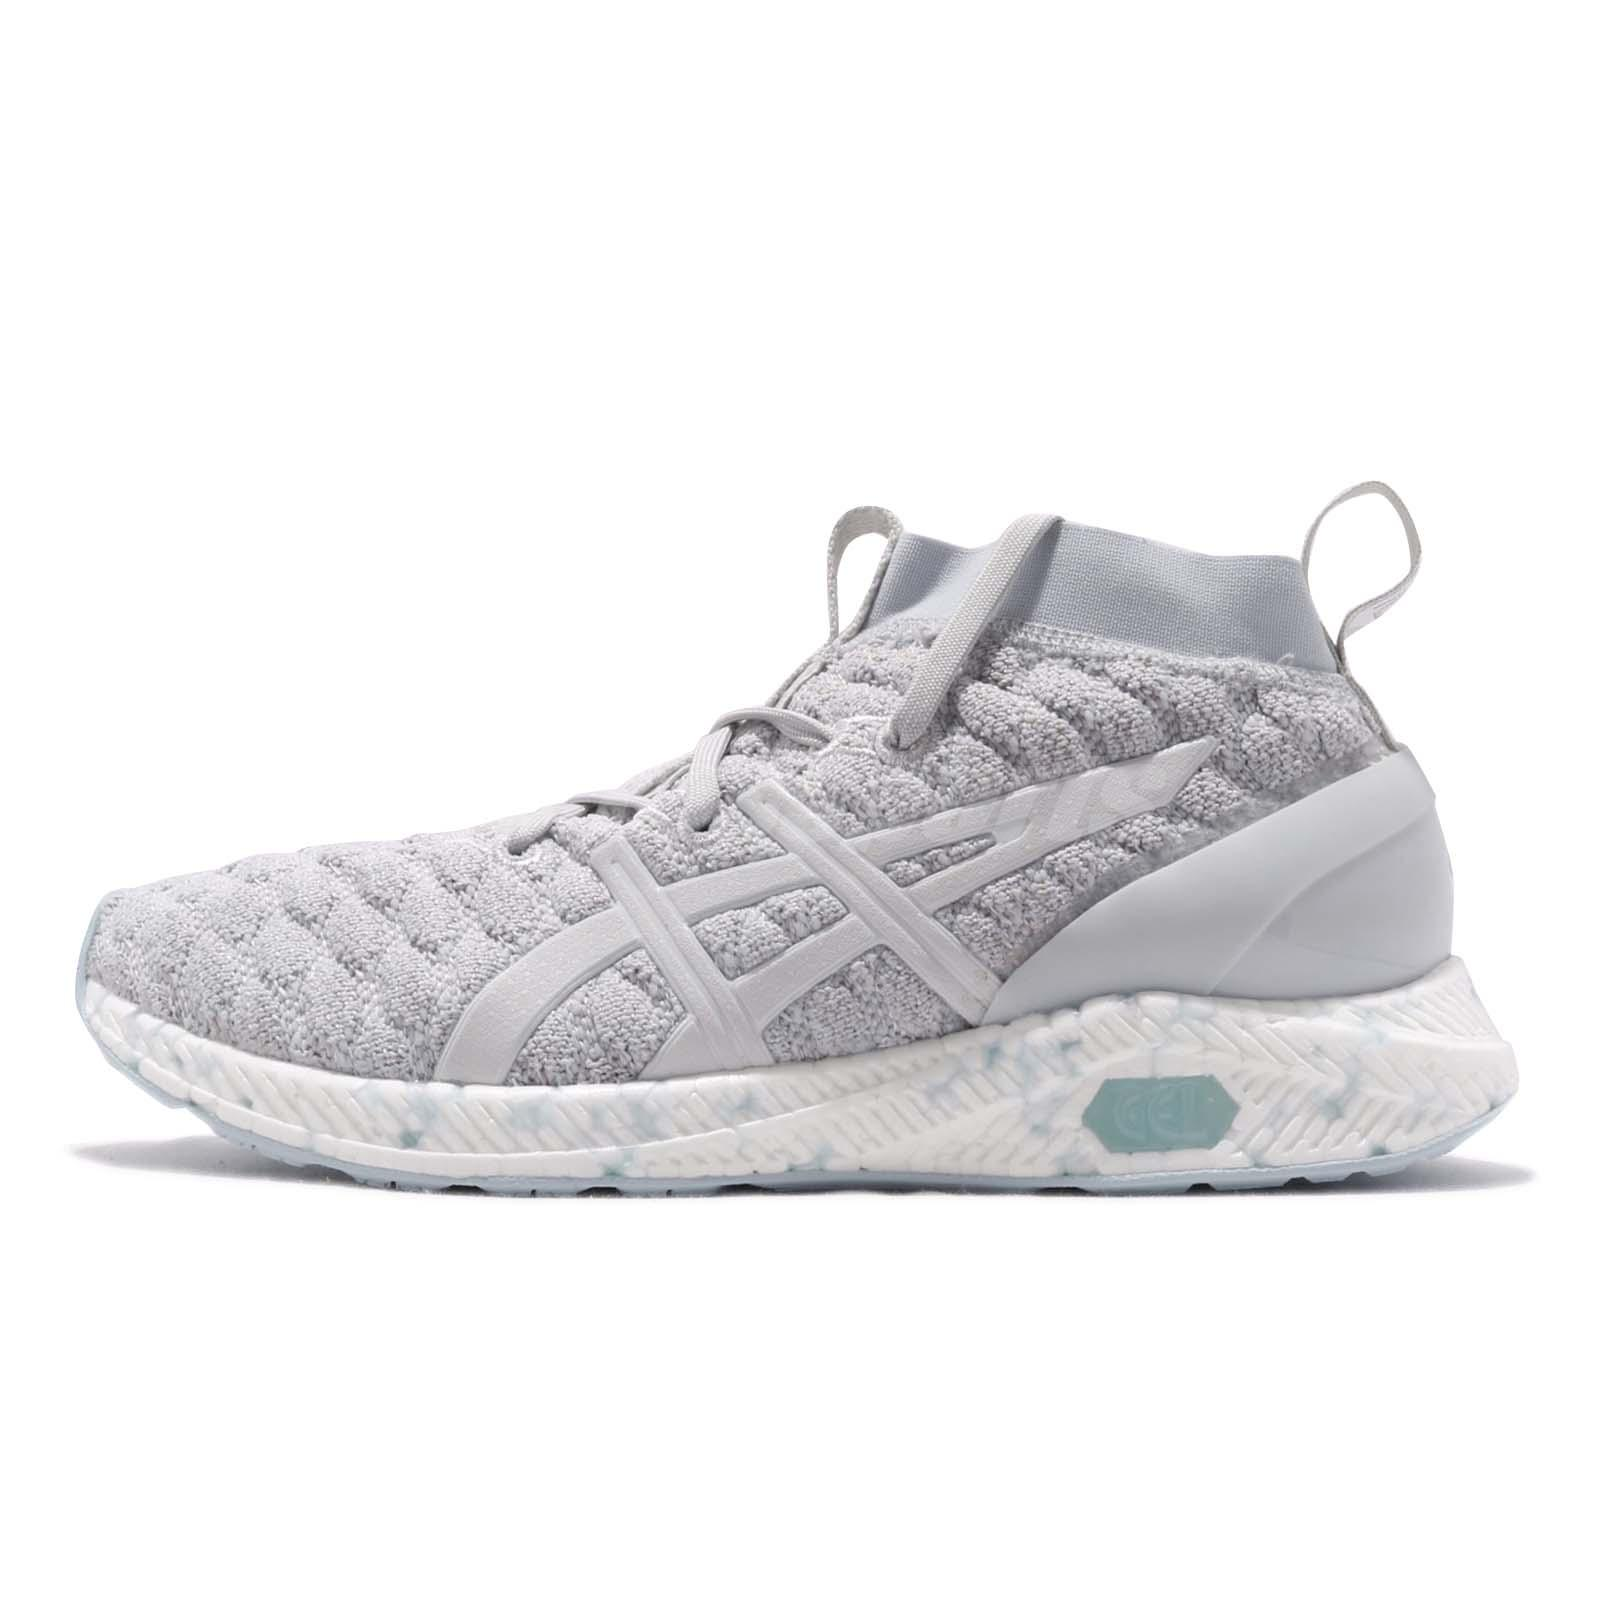 Casual Kan Hypergel Sneakers Women 020 1022a032 Grey Asics Shoes Details About White Running kn0wOP